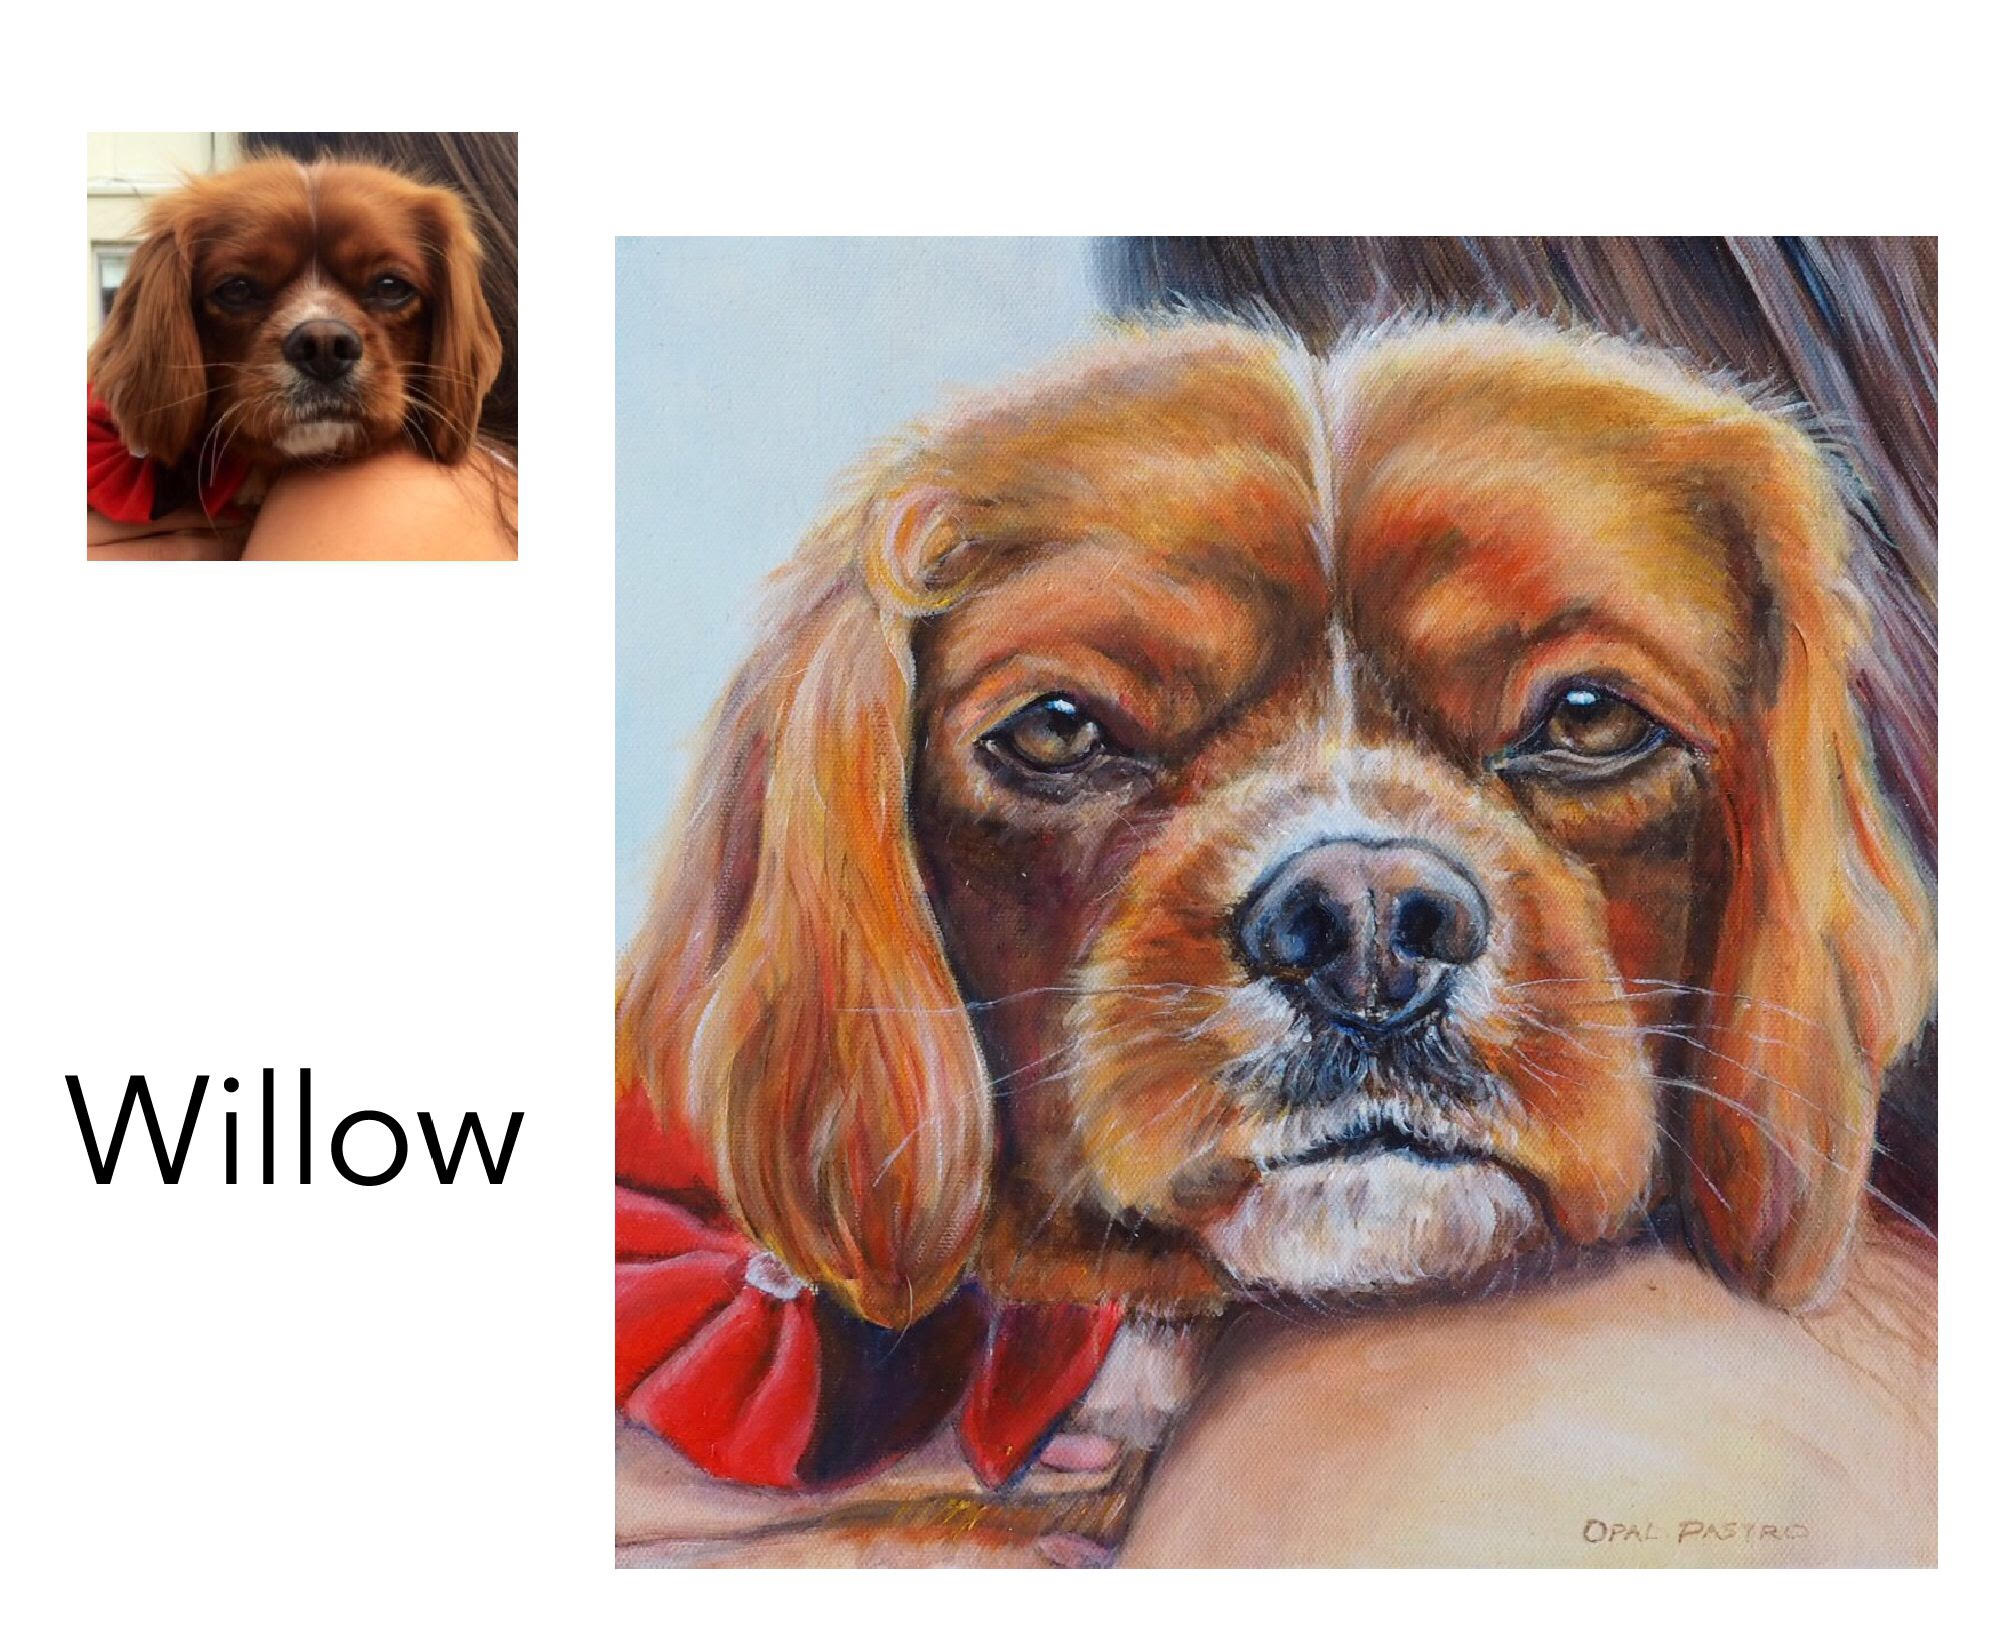 """Cavalier King Charles Spaniel - Acrylic and oil on canvas 12"""" x 12"""" (30.48cm x 30.48cm)Private commissionHobart, Tasmania, Australia———————————Willow is a sweet girl much loved by her whole family. This painting was commissioned as a birthday gift for Mum, and was a beautiful surprise."""